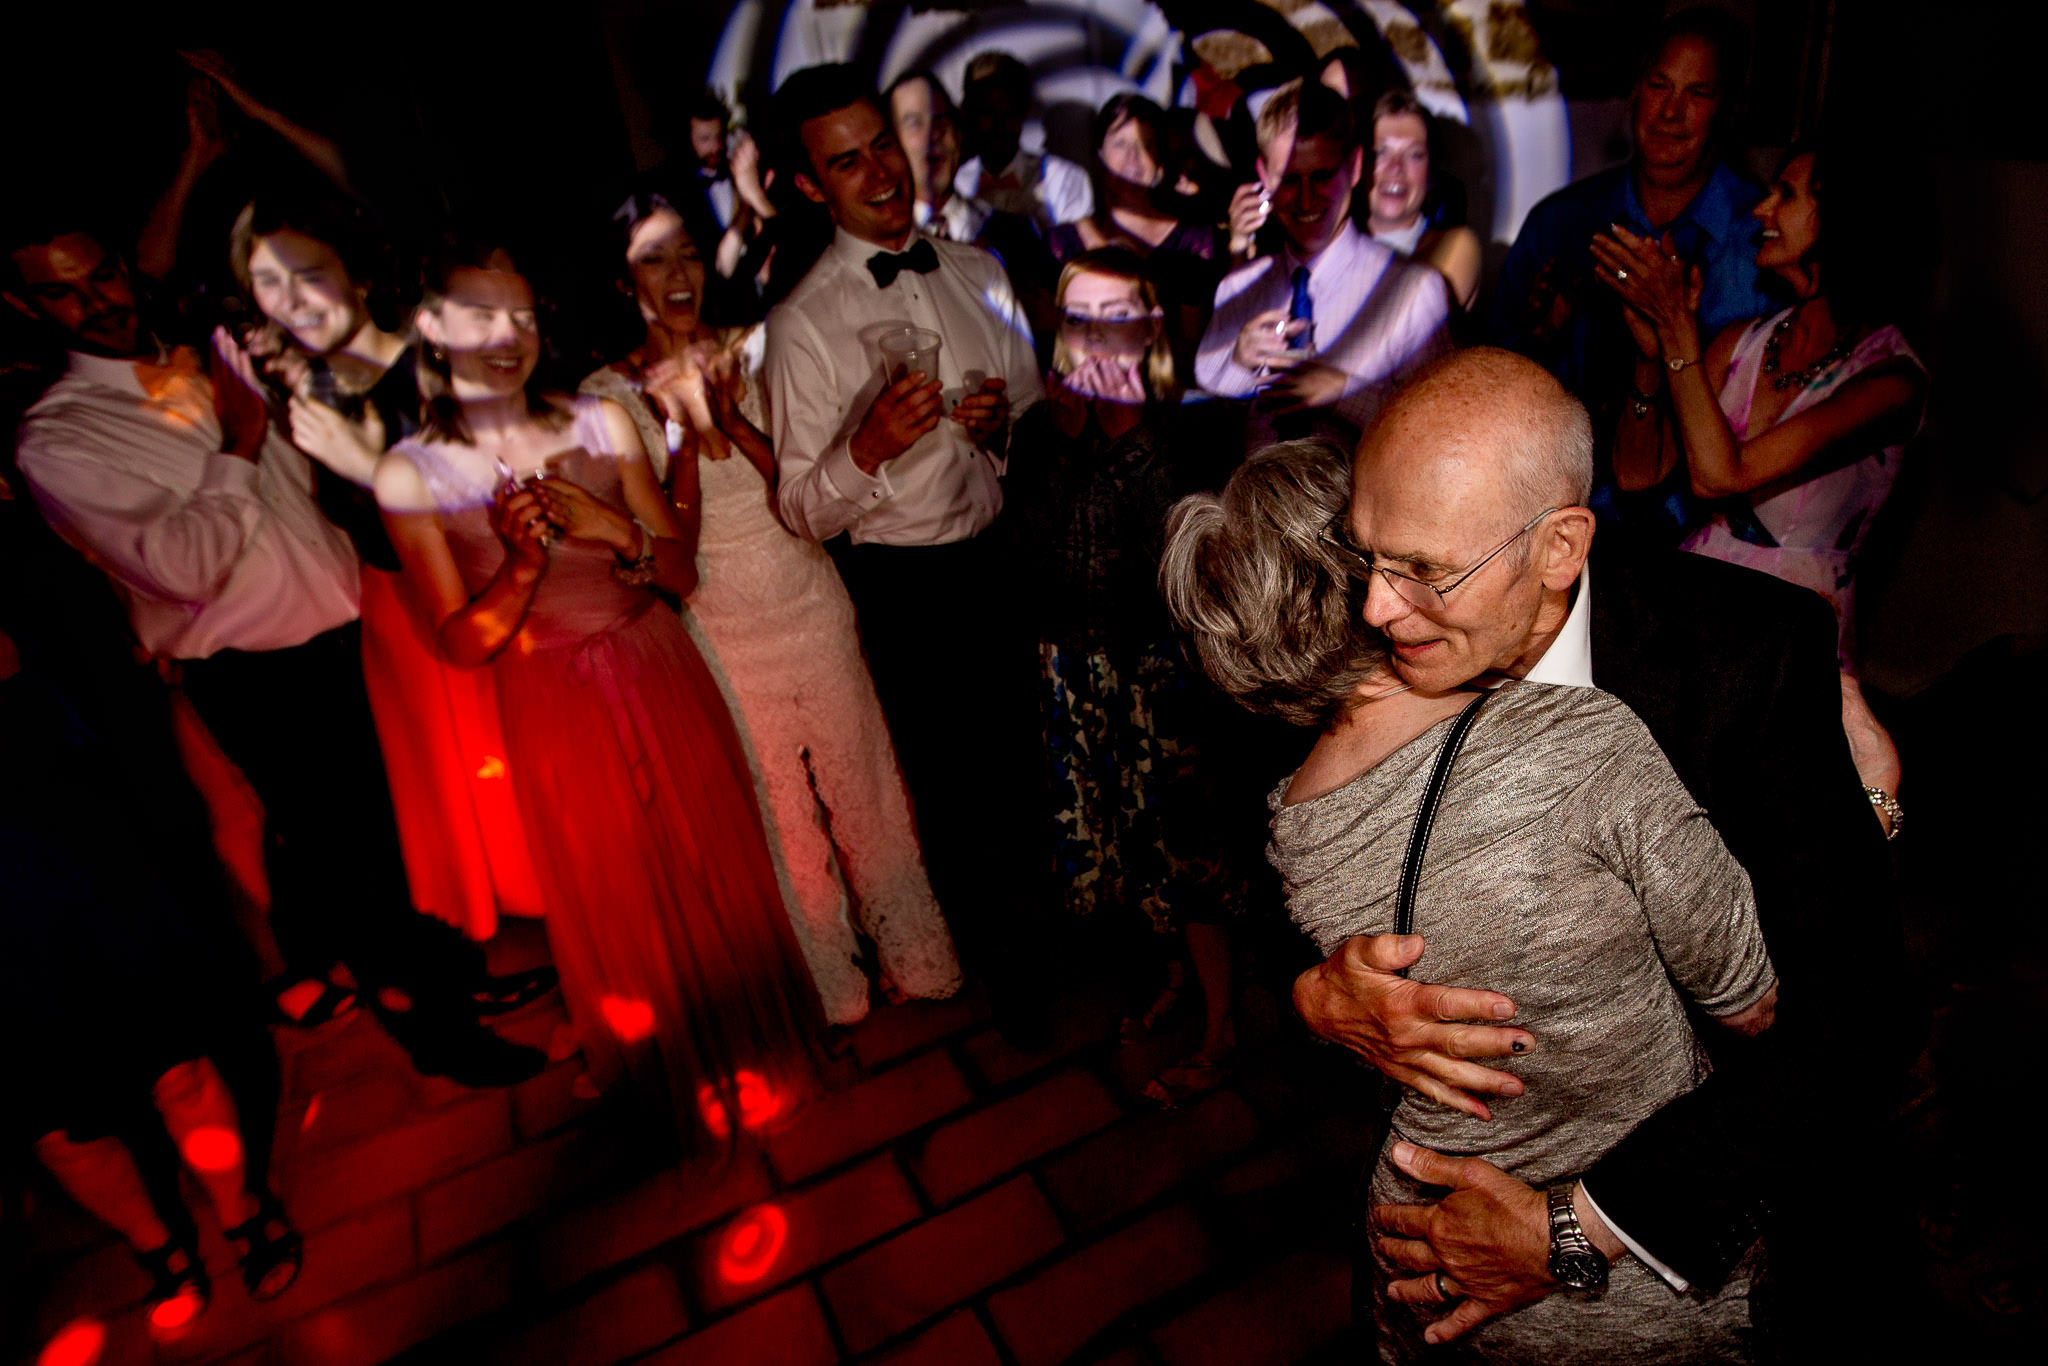 Father of bride dancing with mother Bride at chateau wedding in Cirque de Navacelles outside Montpellier France